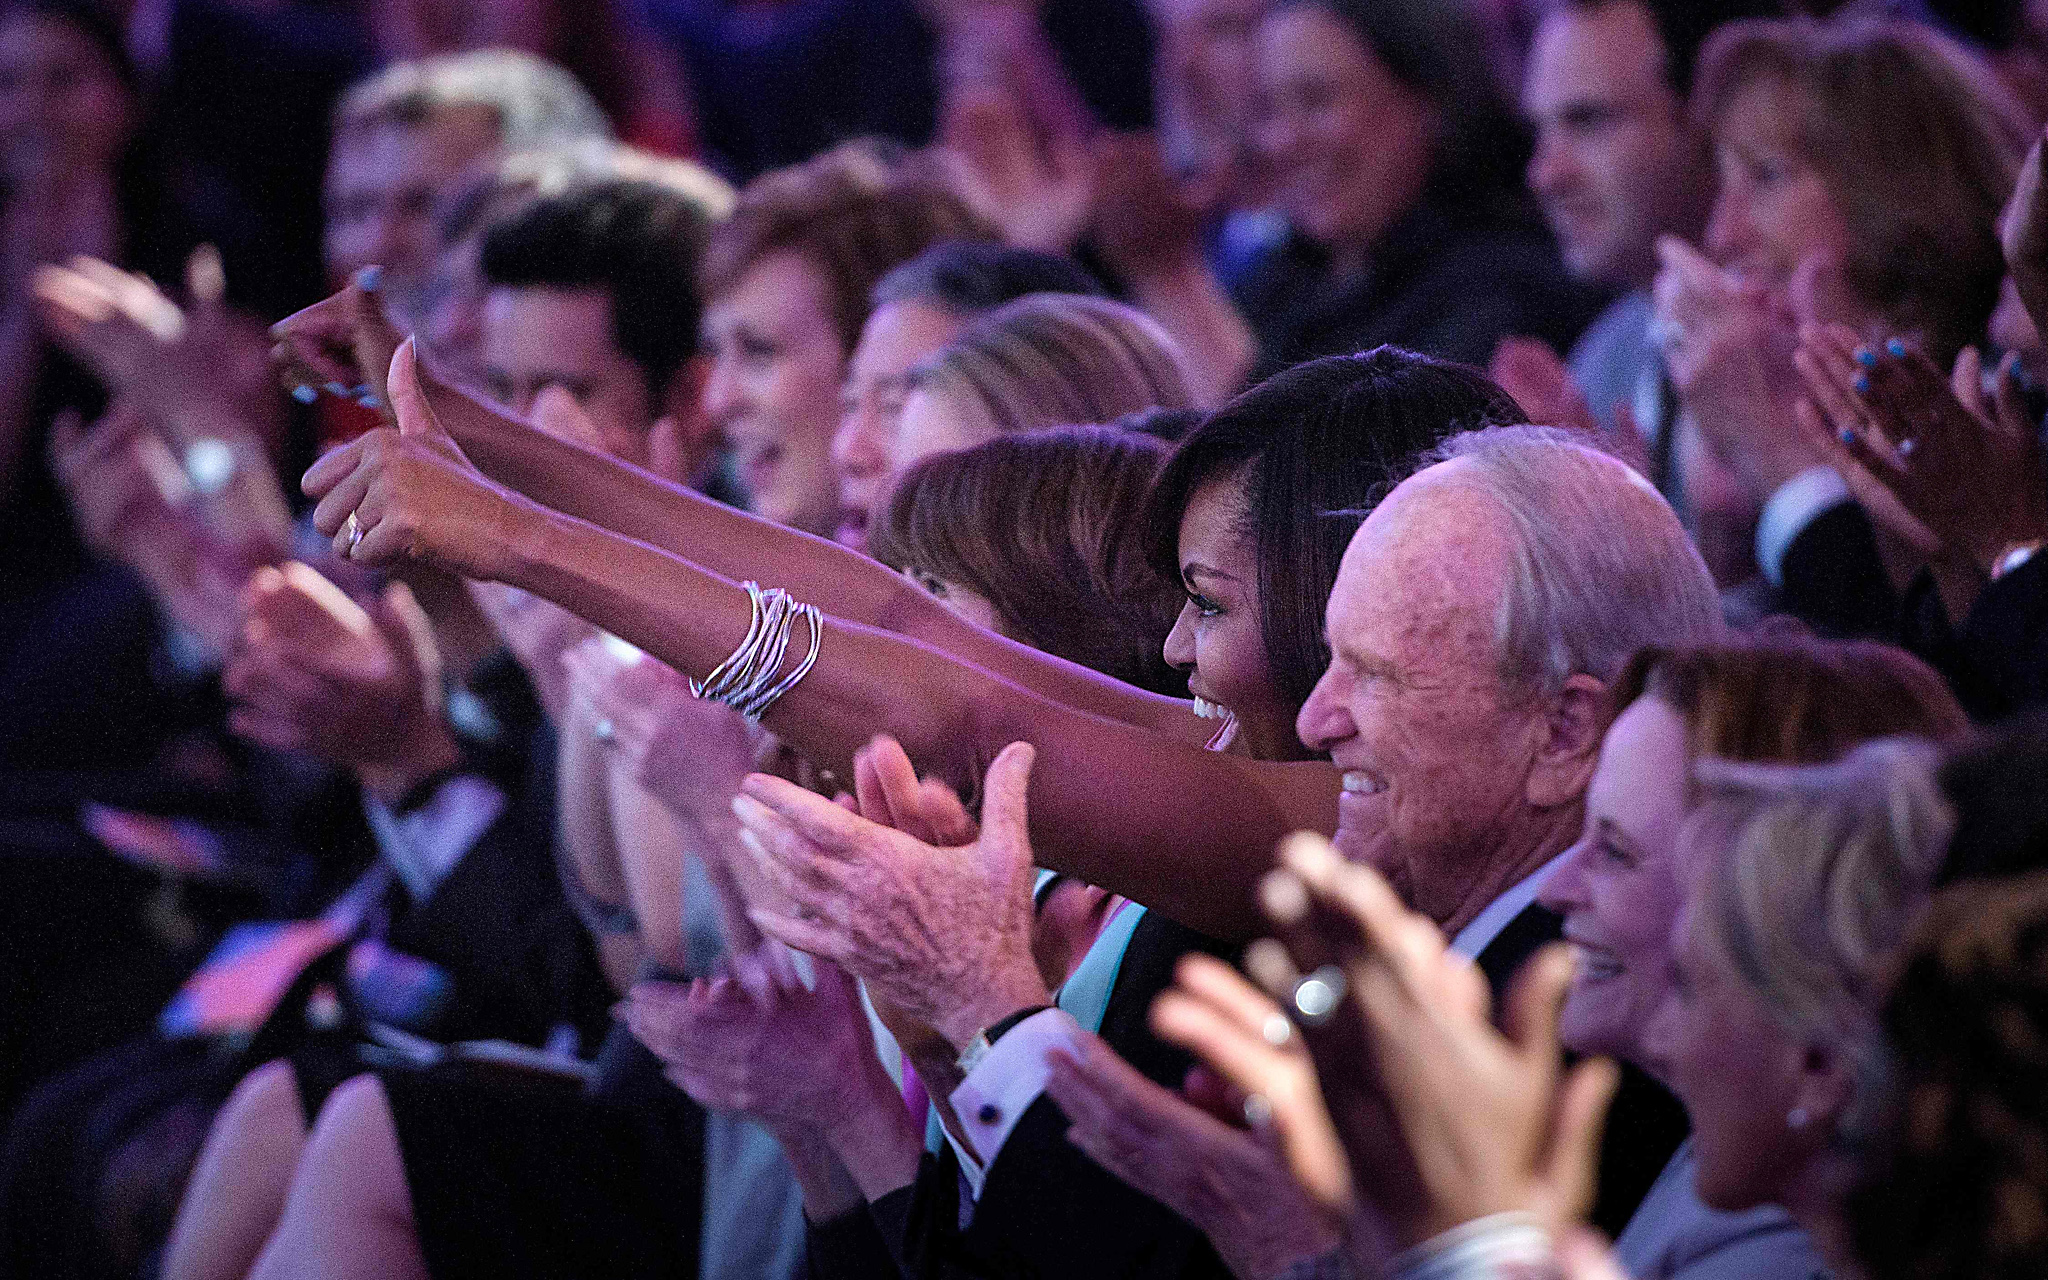 TOPSHOT - US First Lady Michelle Obama cheers during the White House Turnaround Arts Talent Show at the White House May 25, 2016 in Washington, DC.  Students from throughout the US performed at the presidential mansion showcasing the power of arts education.  / AFP PHOTO / Brendan SmialowskiBRENDAN SMIALOWSKI/AFP/Getty Images